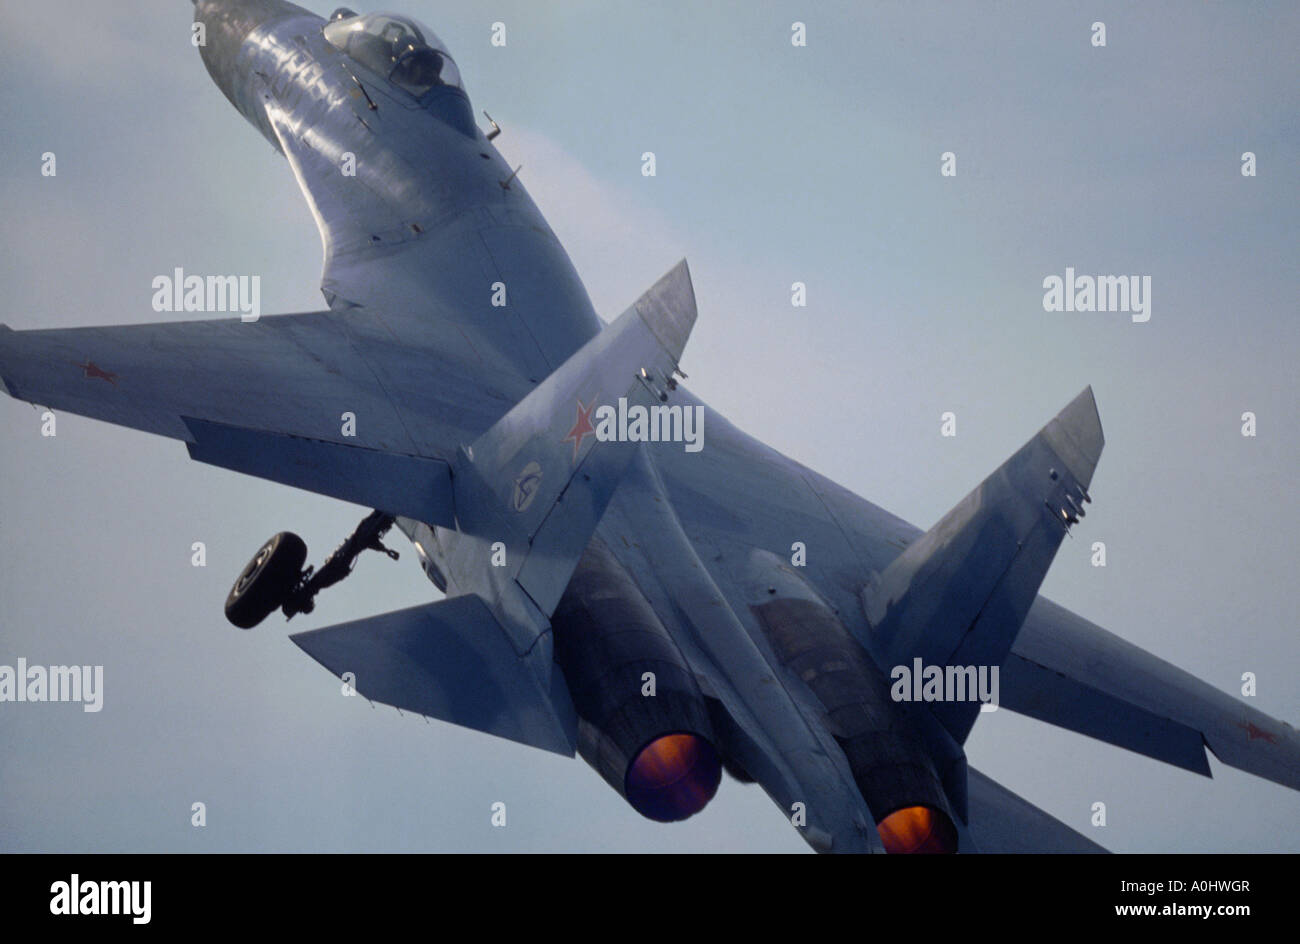 Sukhoi Su-27 Flanker takes off - Stock Image